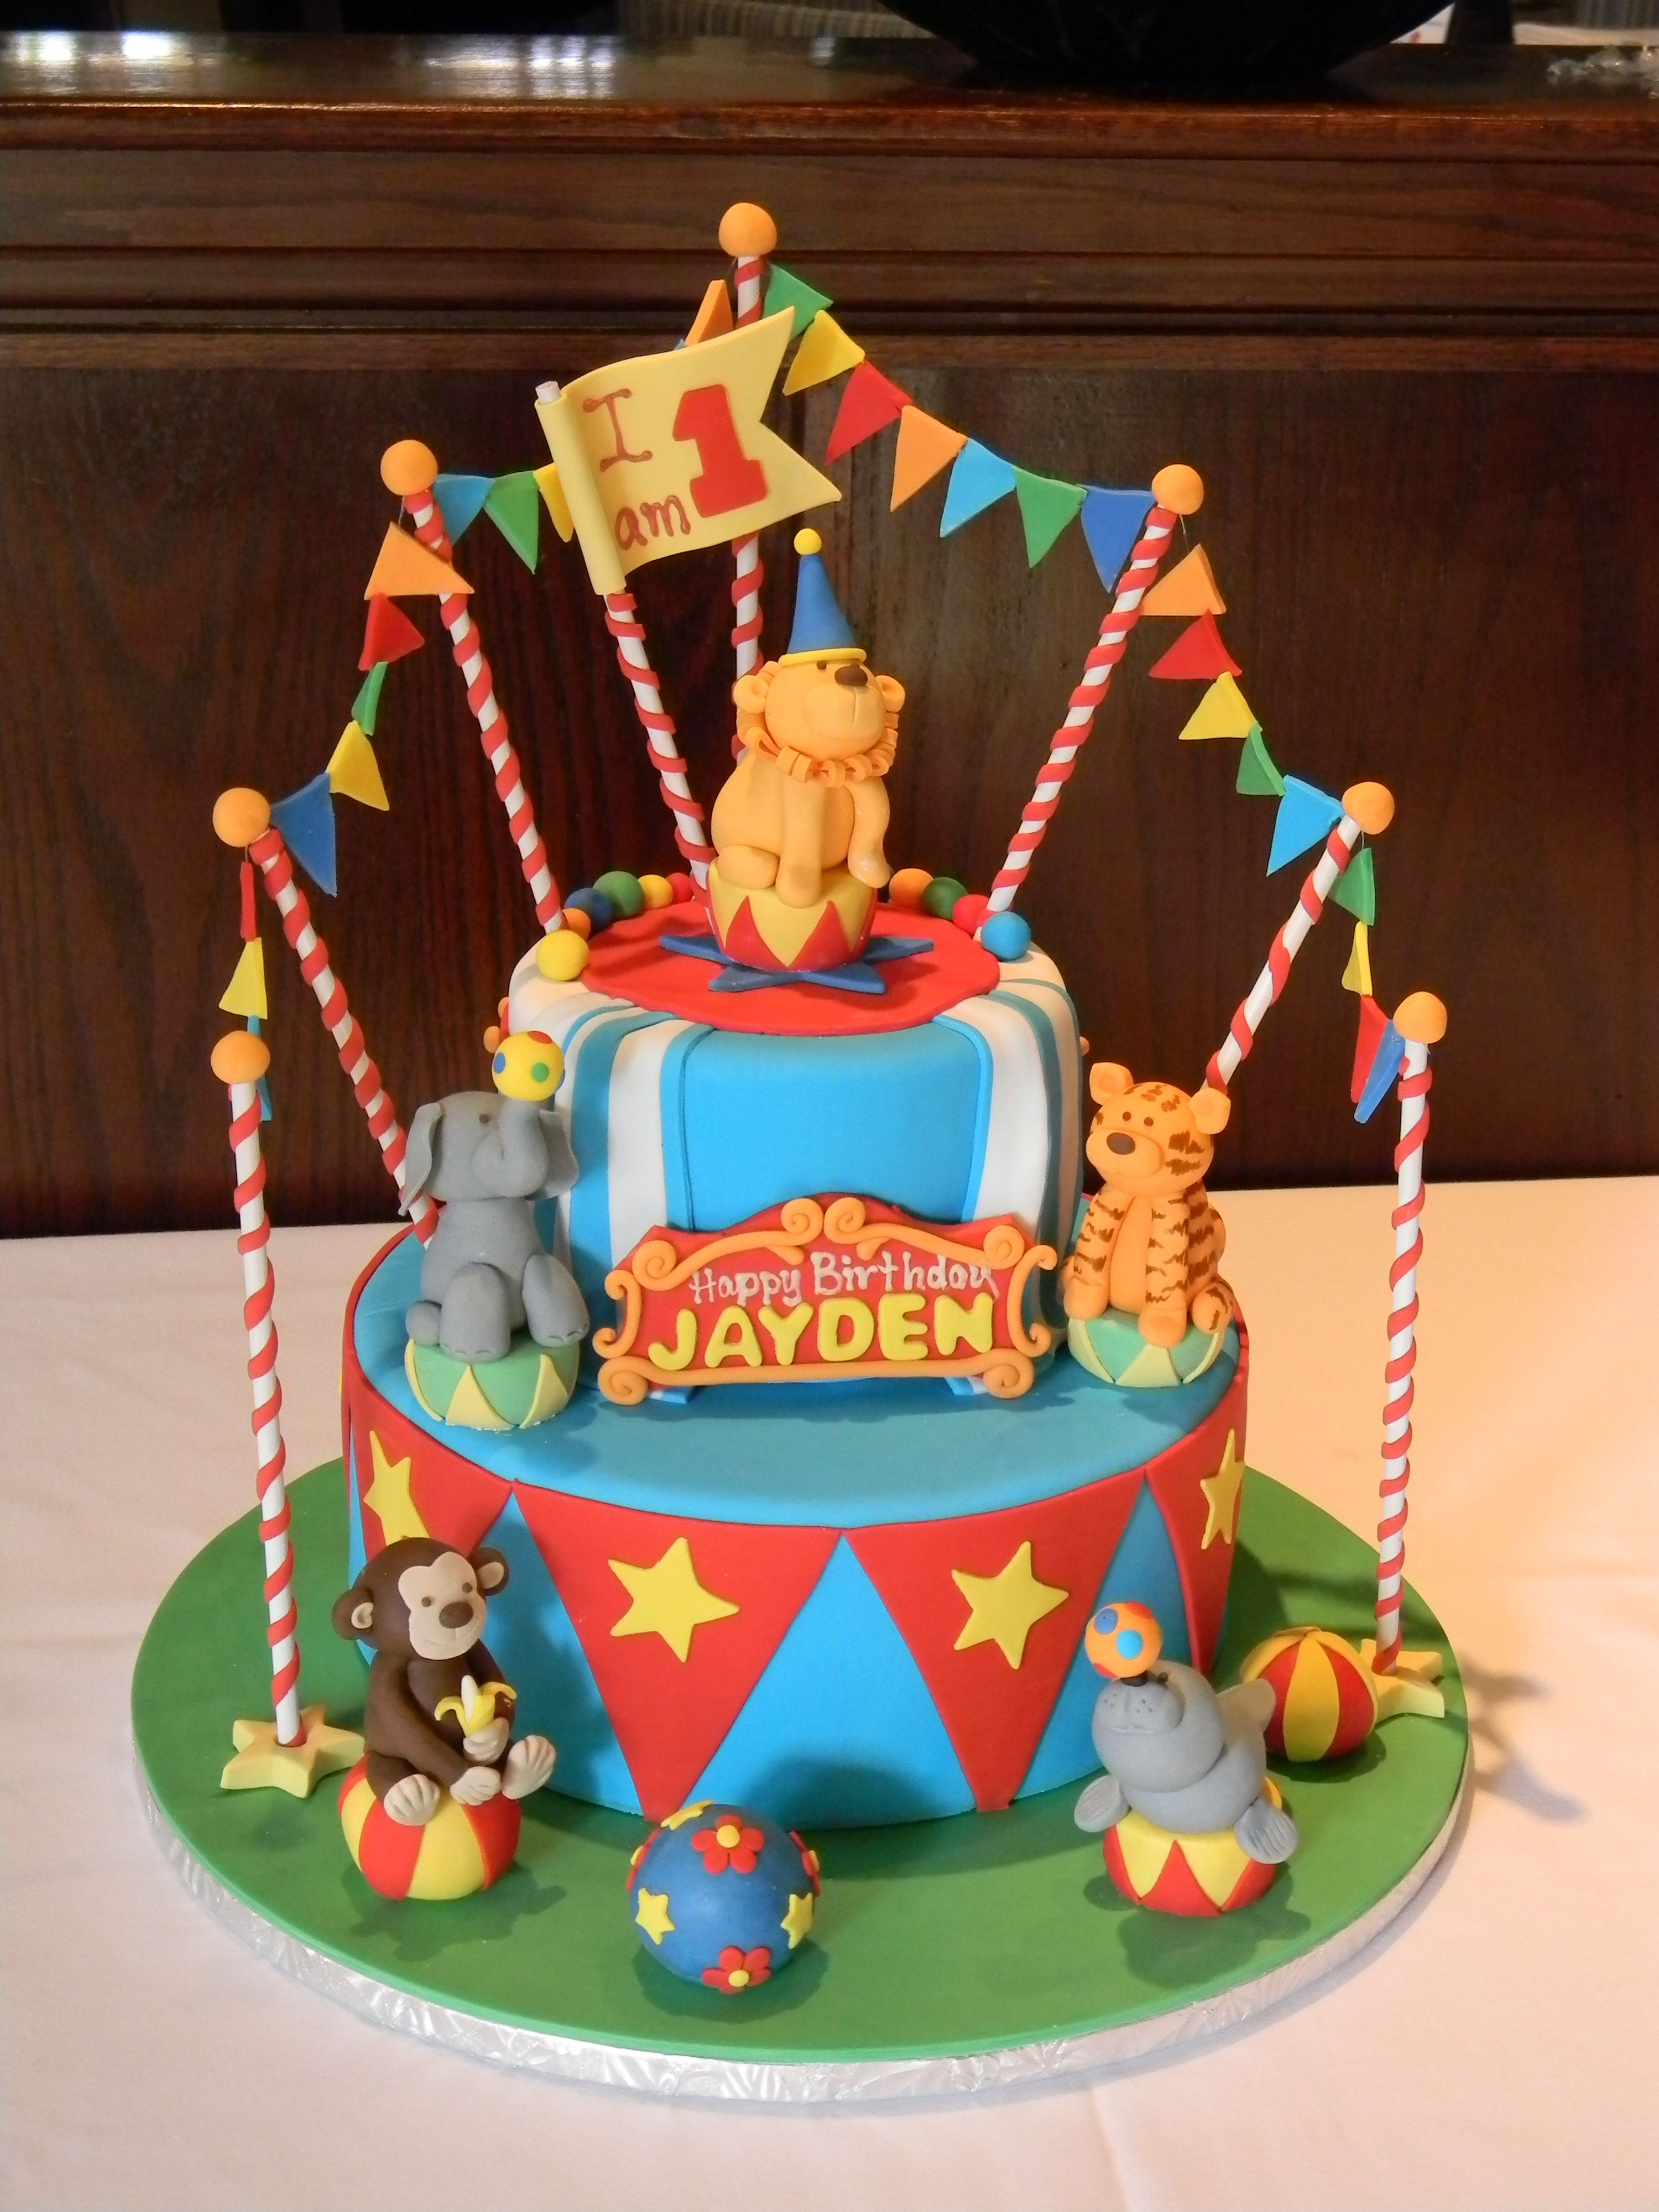 A Super Special First Birthday Circus Cake With Fondant Animals